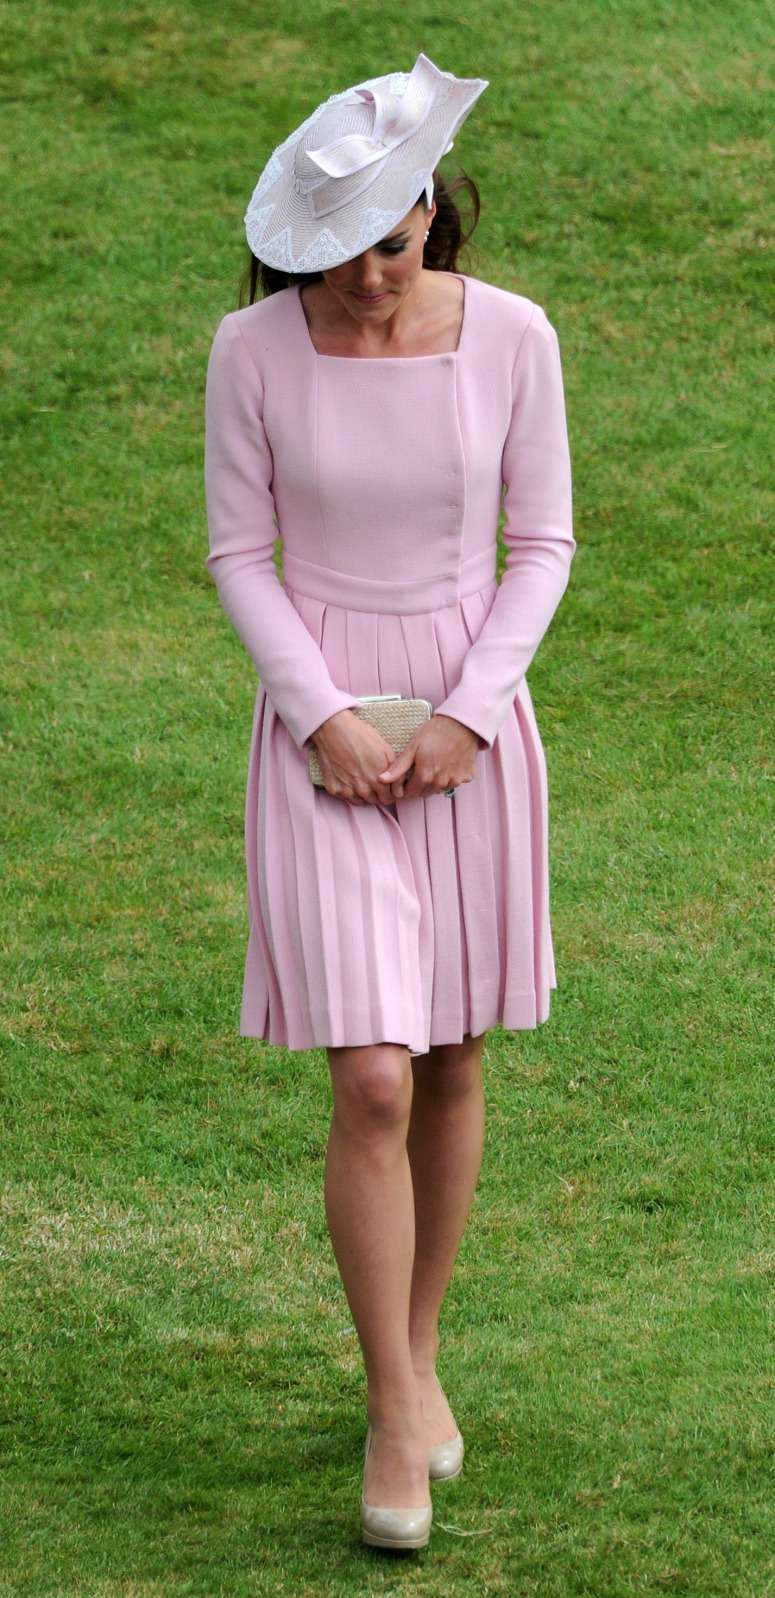 Le temps s'est figé : 3 tenues que Kate Middleton porte depuis 2012kate middleton pink dress